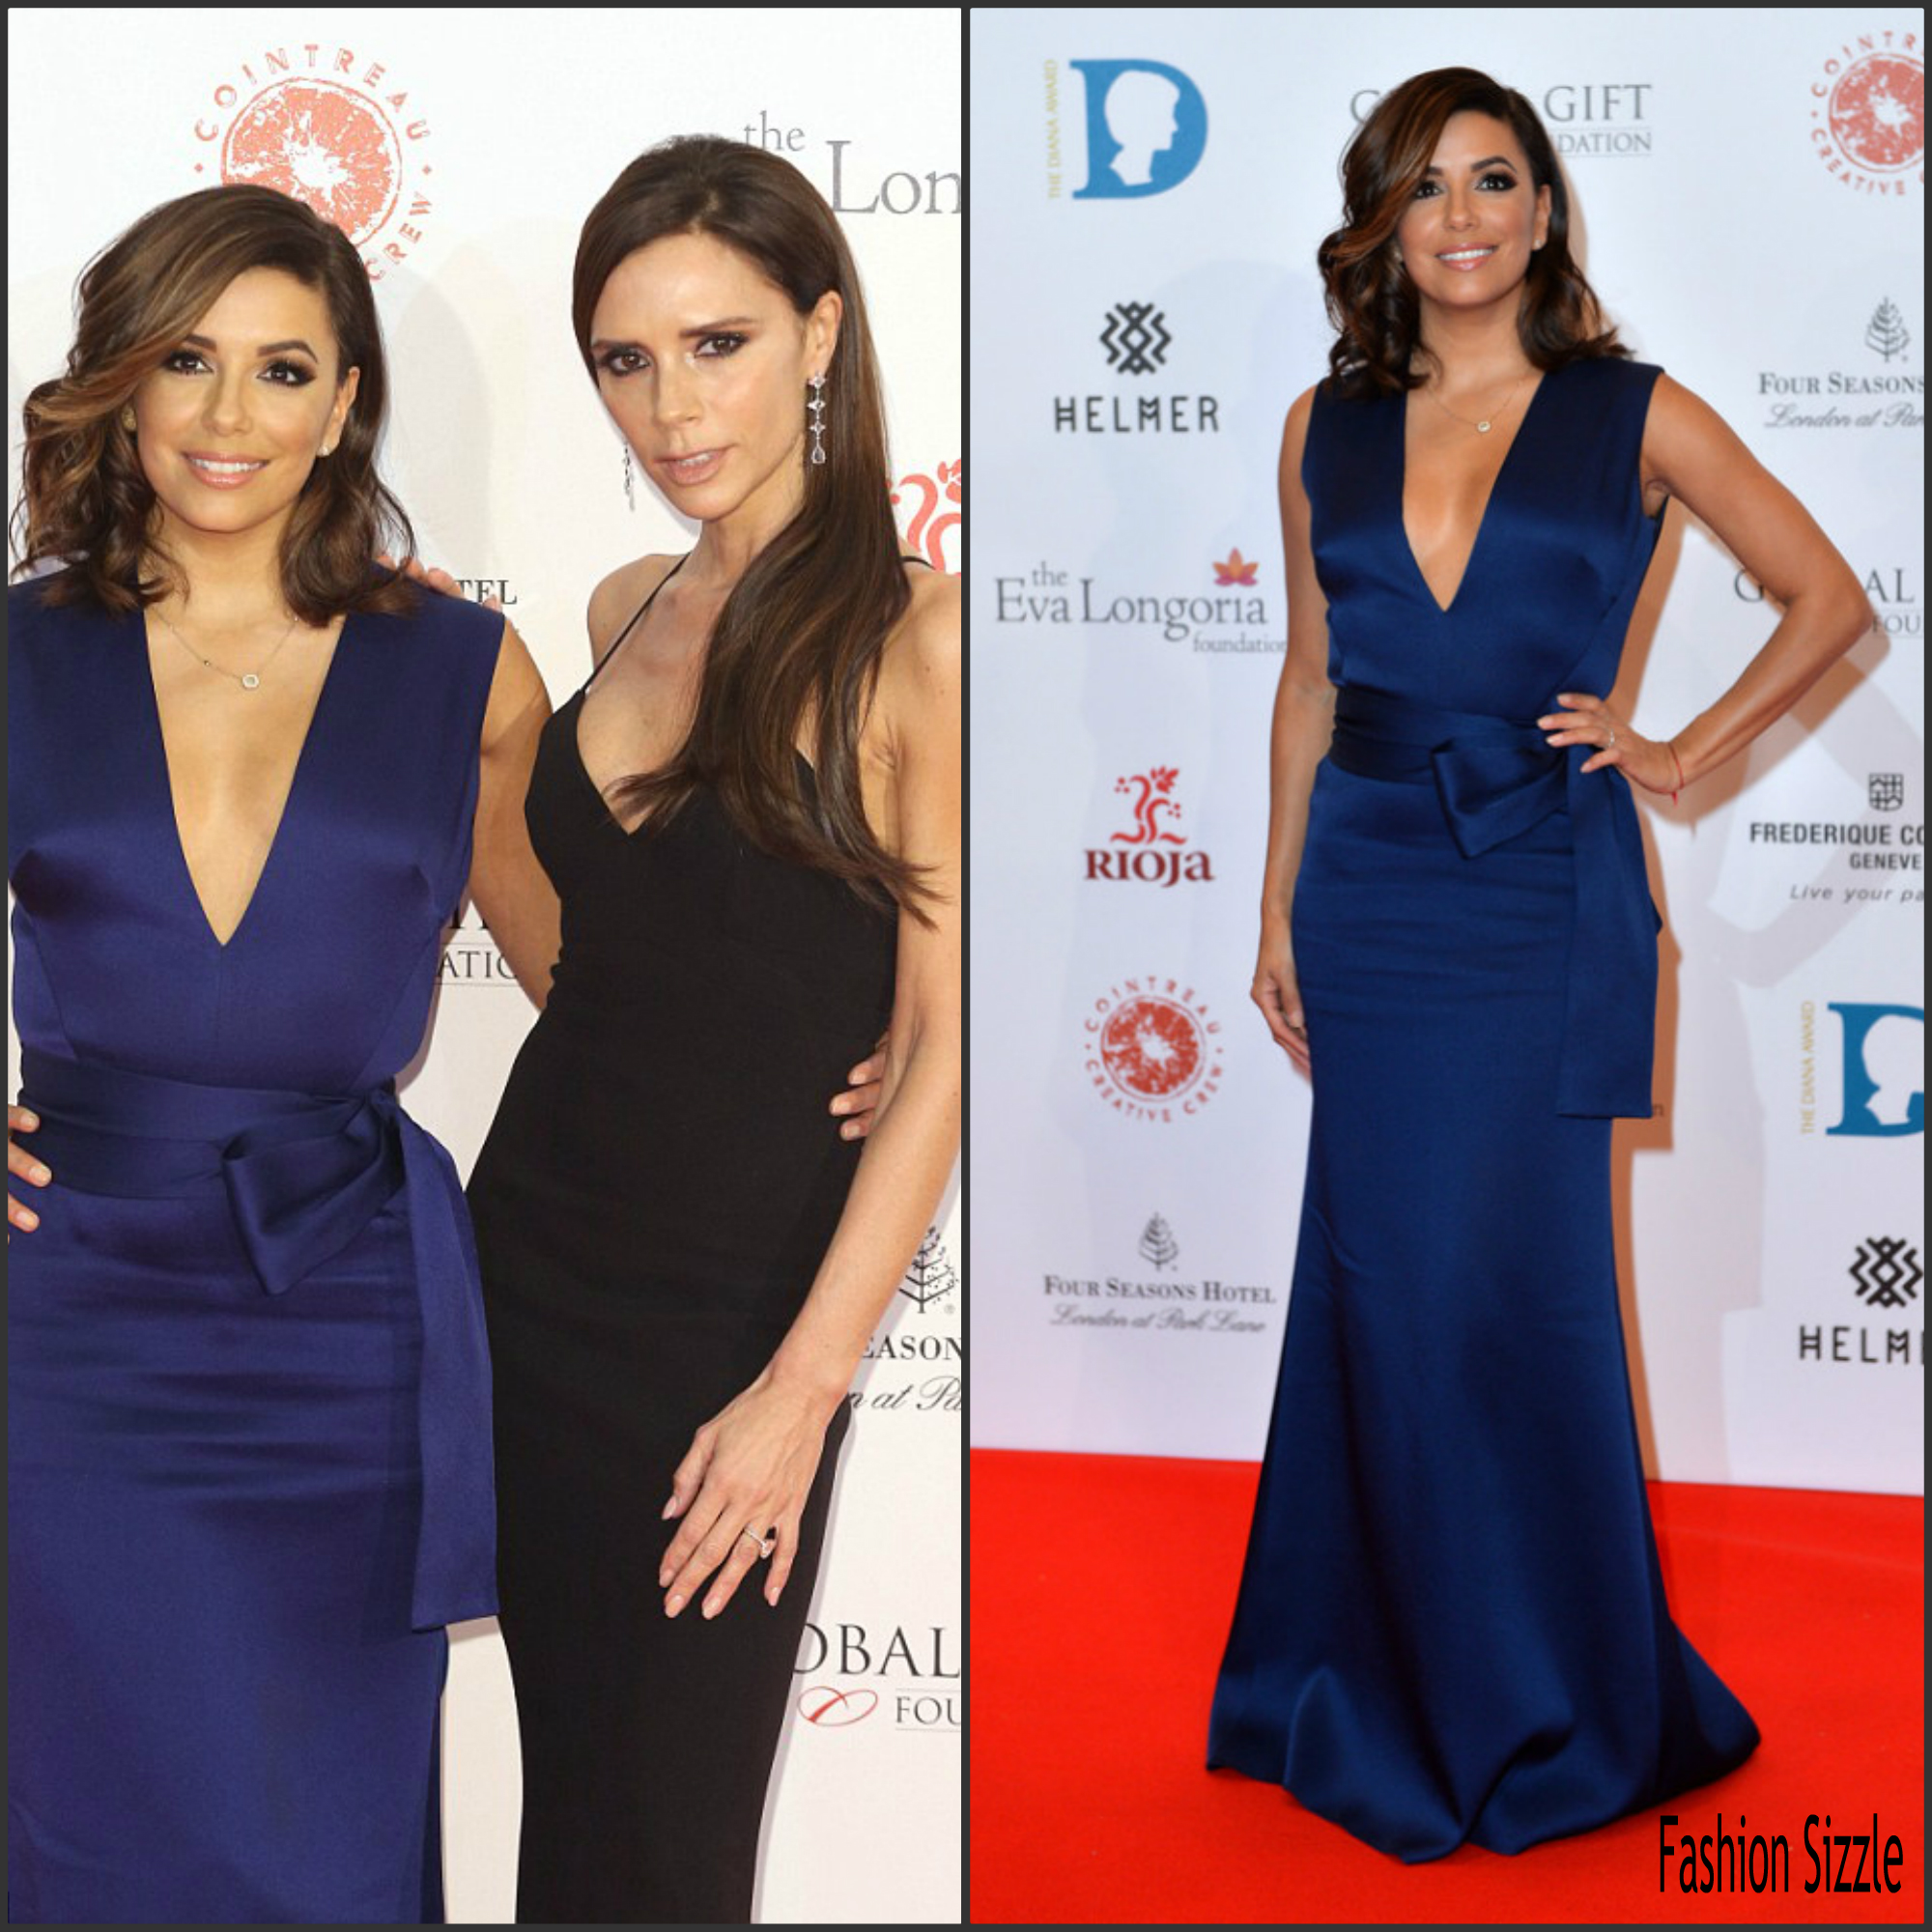 eva-longoria-and-victoria-beckham-in-victoria-beckham-the-global-gift-gala-london-